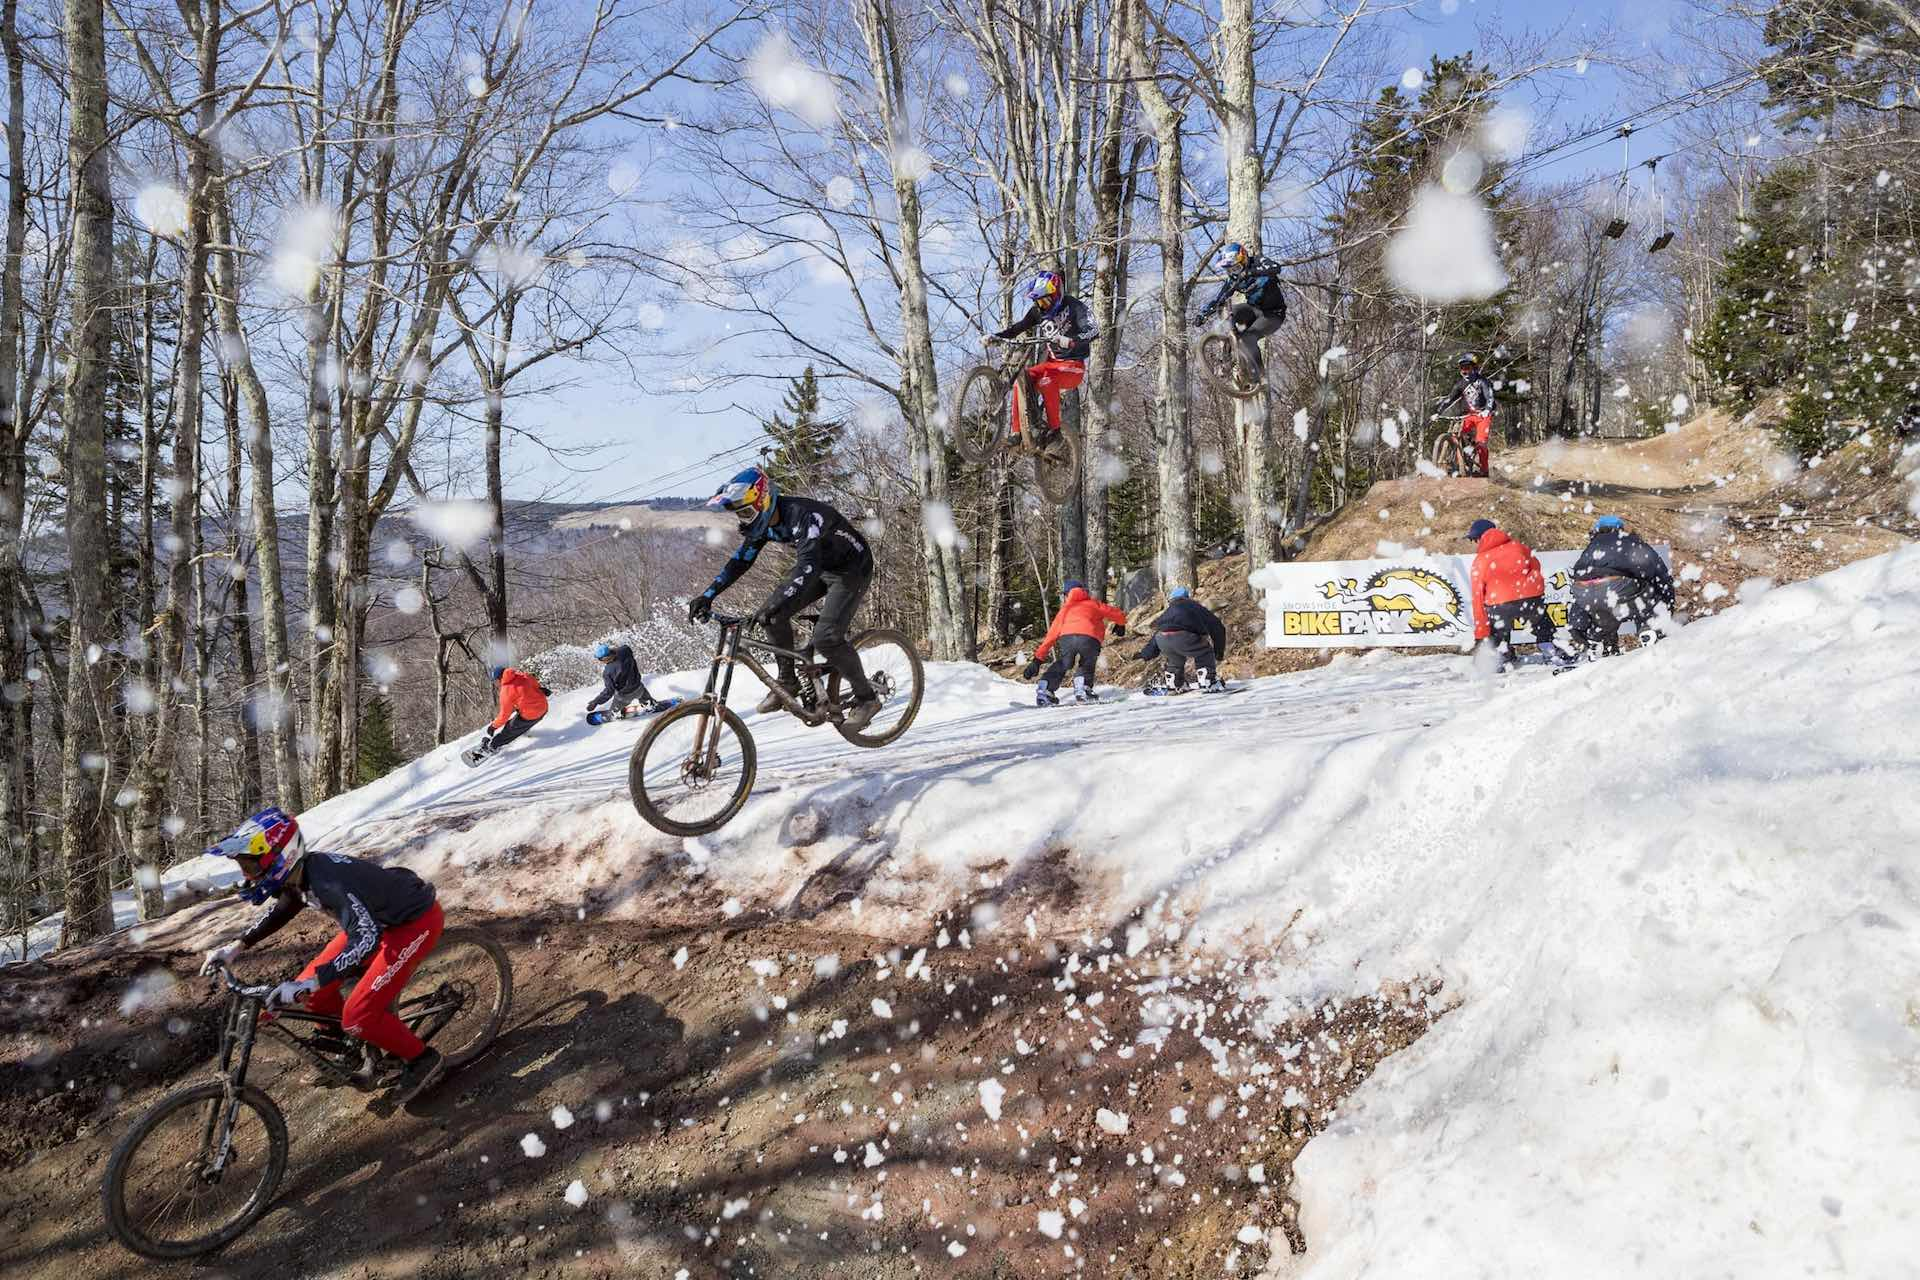 Mountain bike snowboard Red Bull Last Chair First Run Snowshoe, West Virginia8